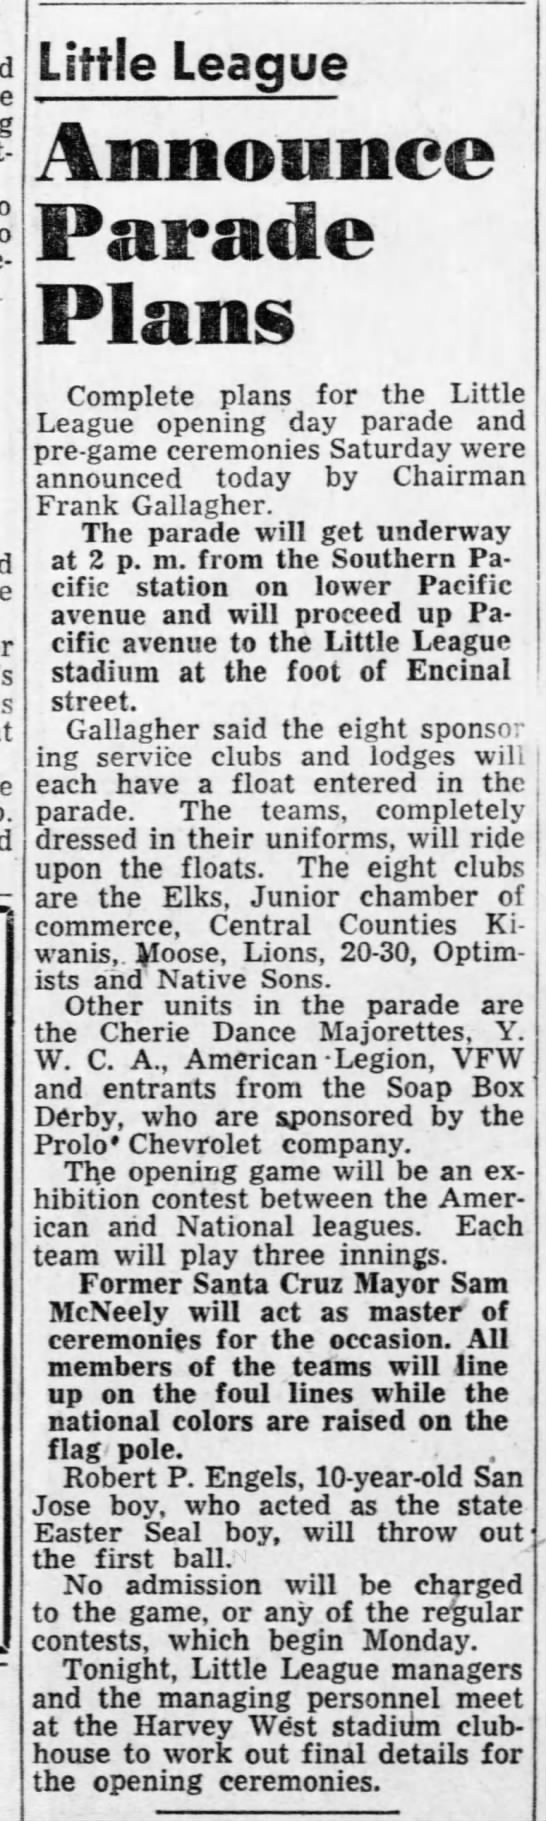 june 3,1952 LL ParadeAnnounced -